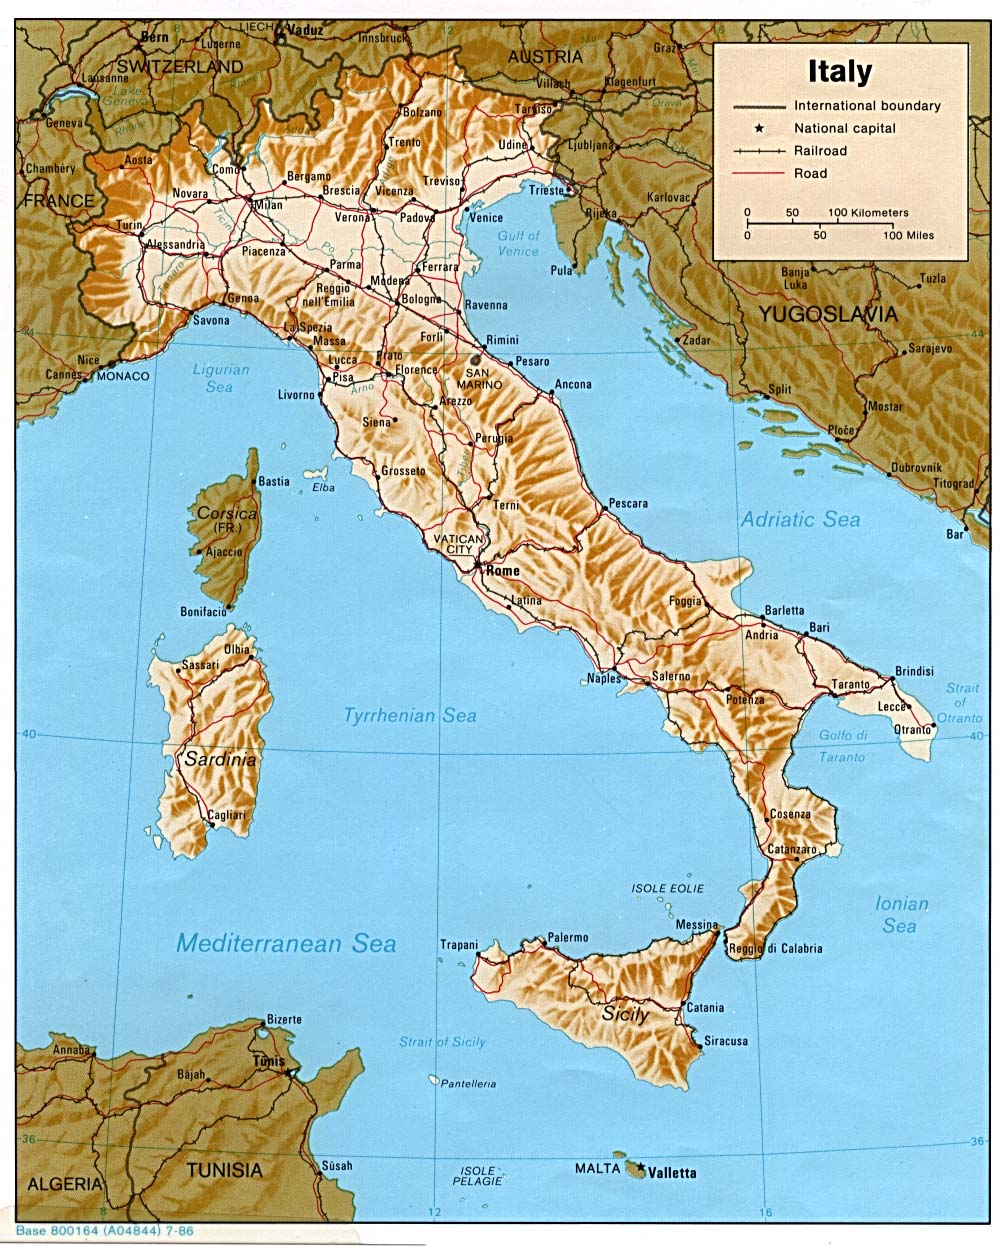 Road Map Of Italy In English.Maps Of Italy Detailed Map Of Italy In English Tourist Map Of